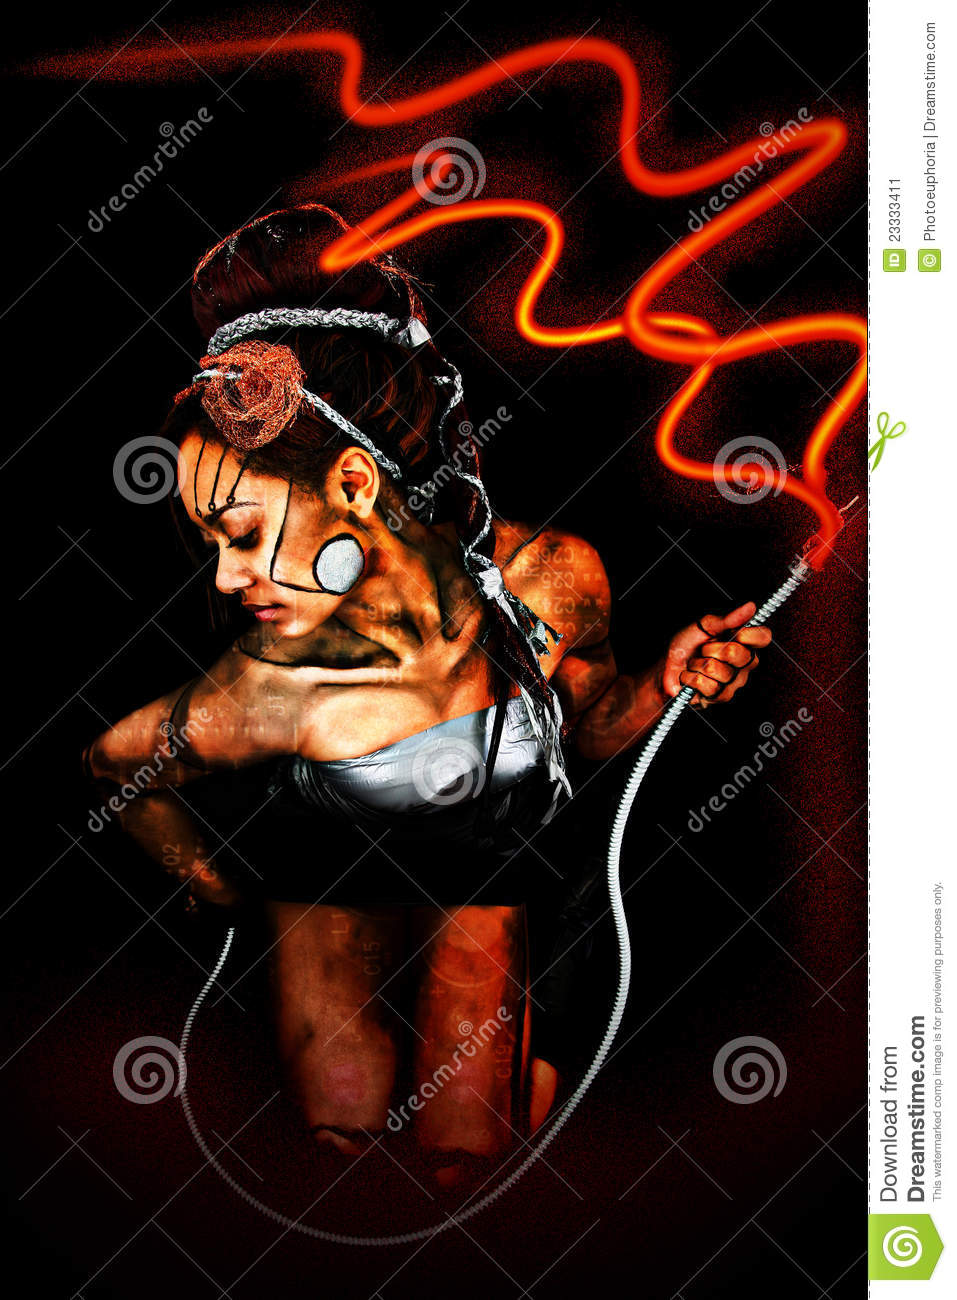 Beautiful Cyborg Woman with Electrical Cord